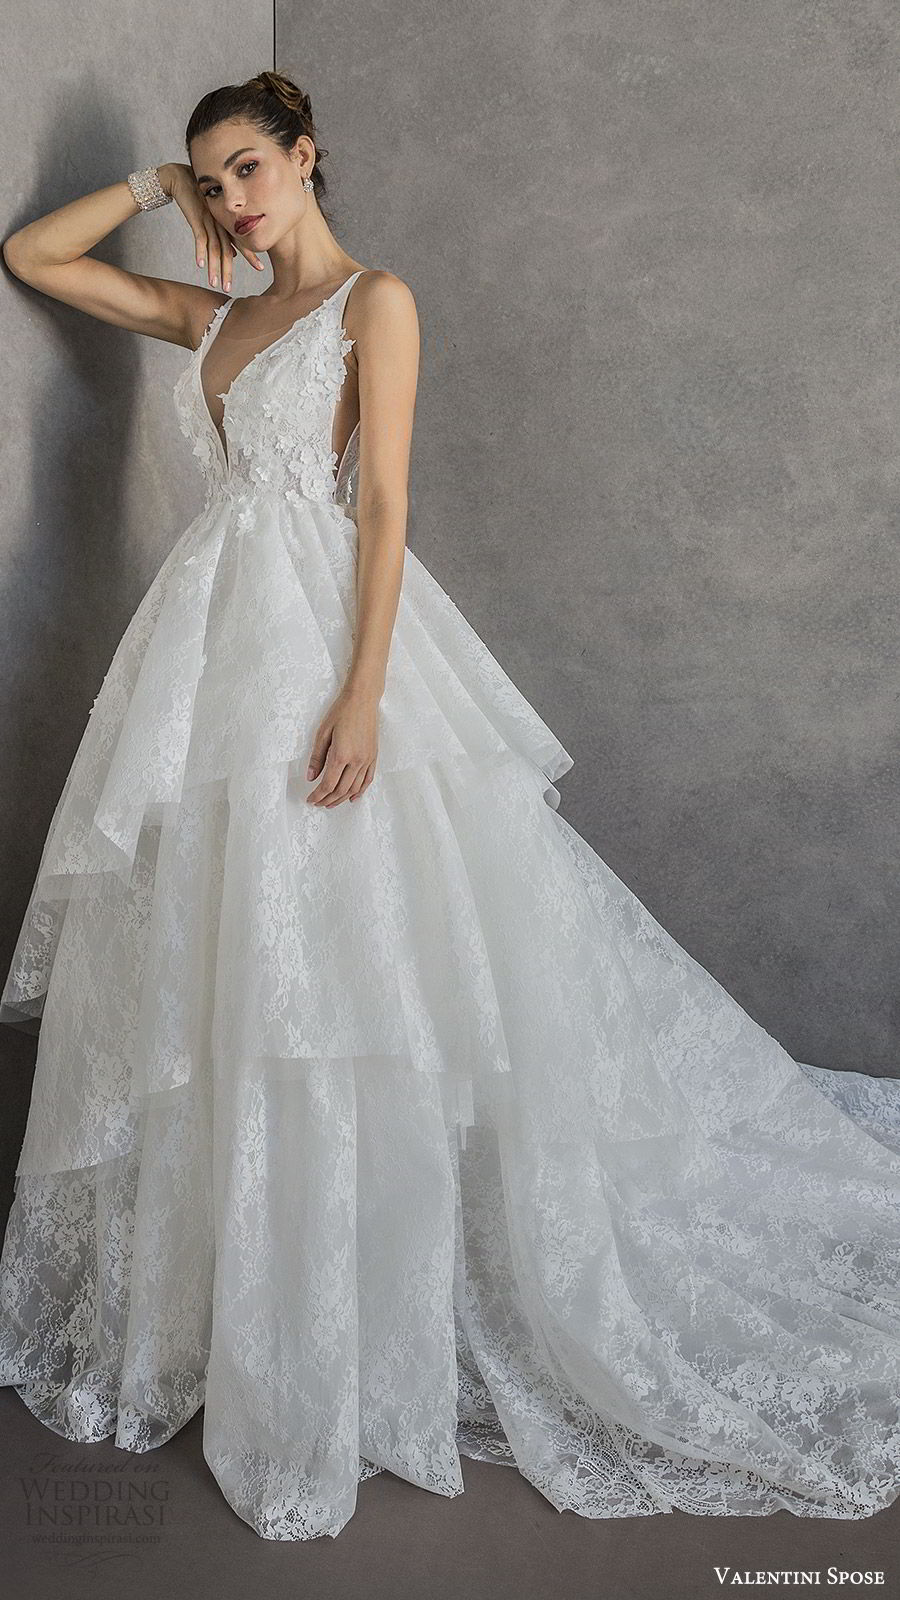 valentini spose spring 2020 bridal sleeveless deep v neckline embellished bodice lace a line ball gown wedding dress (8) tiered skirt romantic princess mv